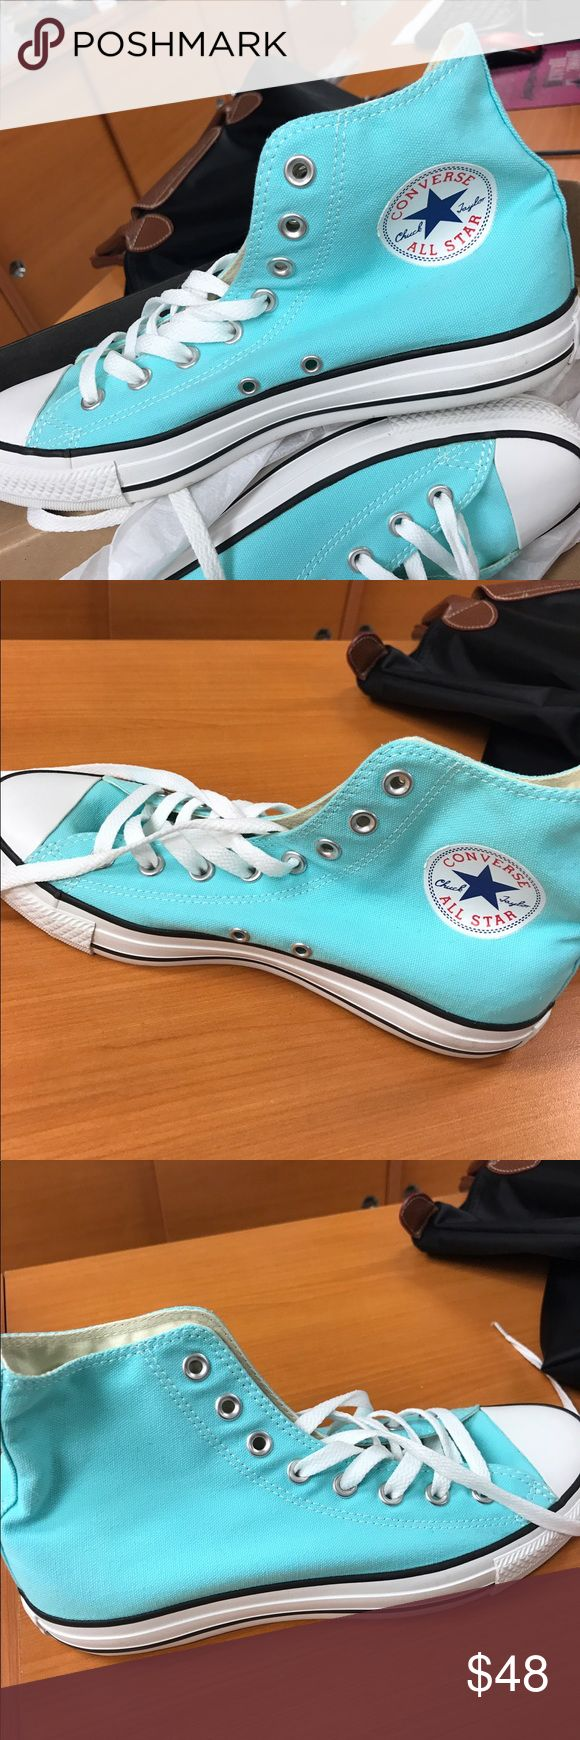 BRAND NEW CONVERSE HIGH TOP SHOES! BRAND NEW CONVERSE HIGH TOP SHOES! Woman's Size 10, Men's Size 8 (Unisex) Converse Shoes Sneakers